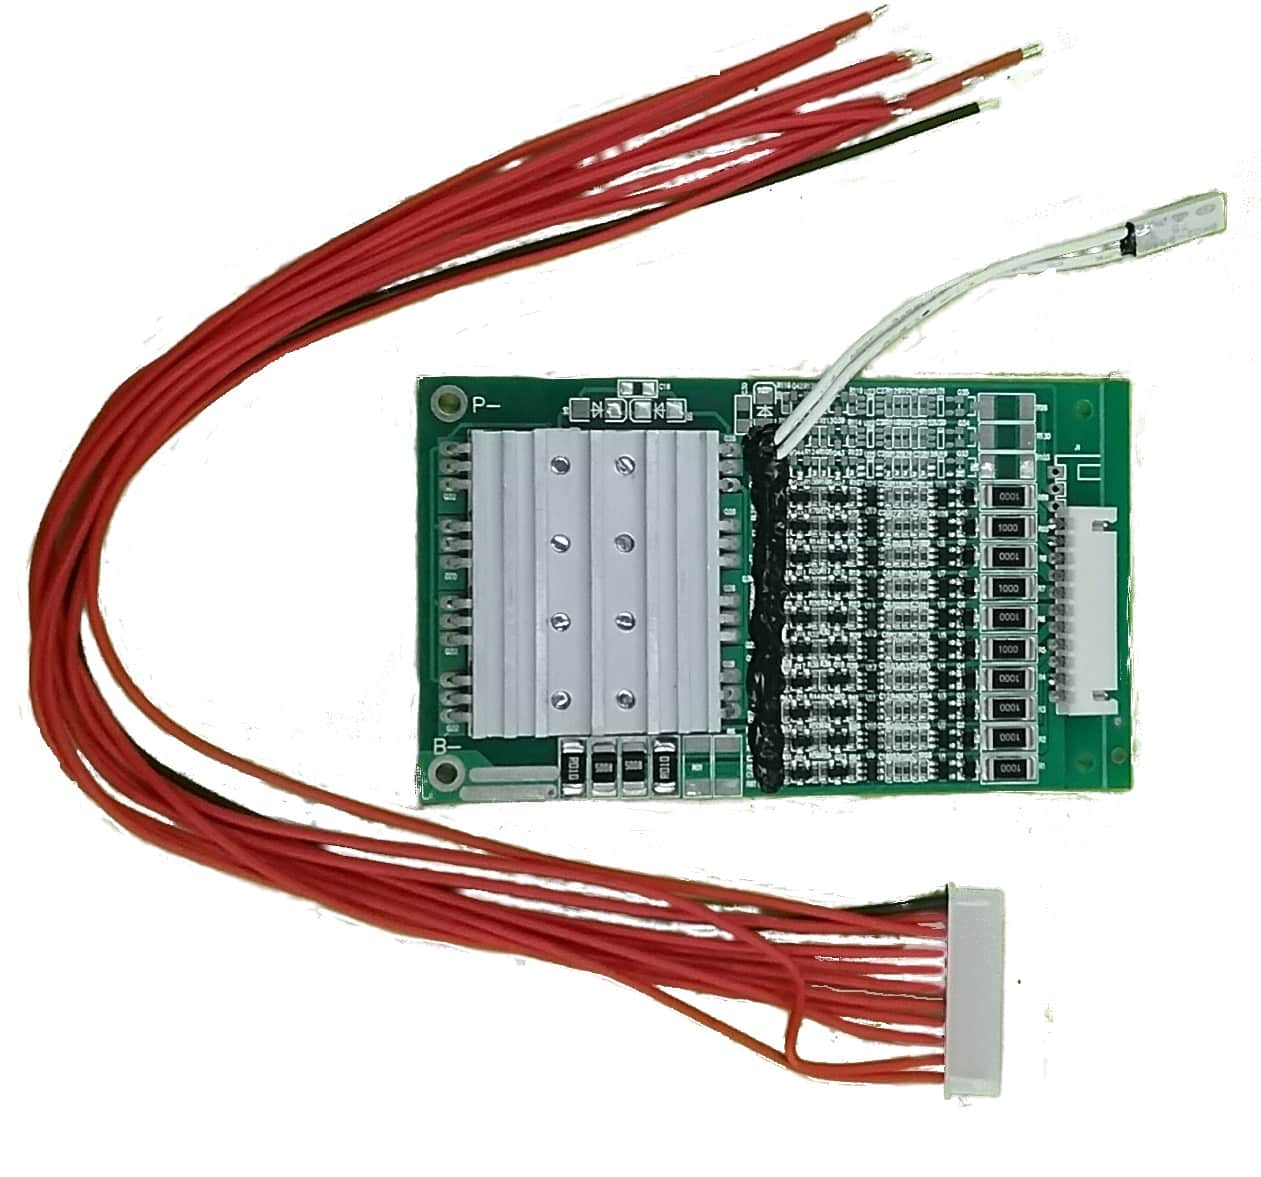 Battery Management System 10s 36v 20amp Bms Pcb Lws 13s15a 051 Overdischarge Cut Off Circuit Electronics Design